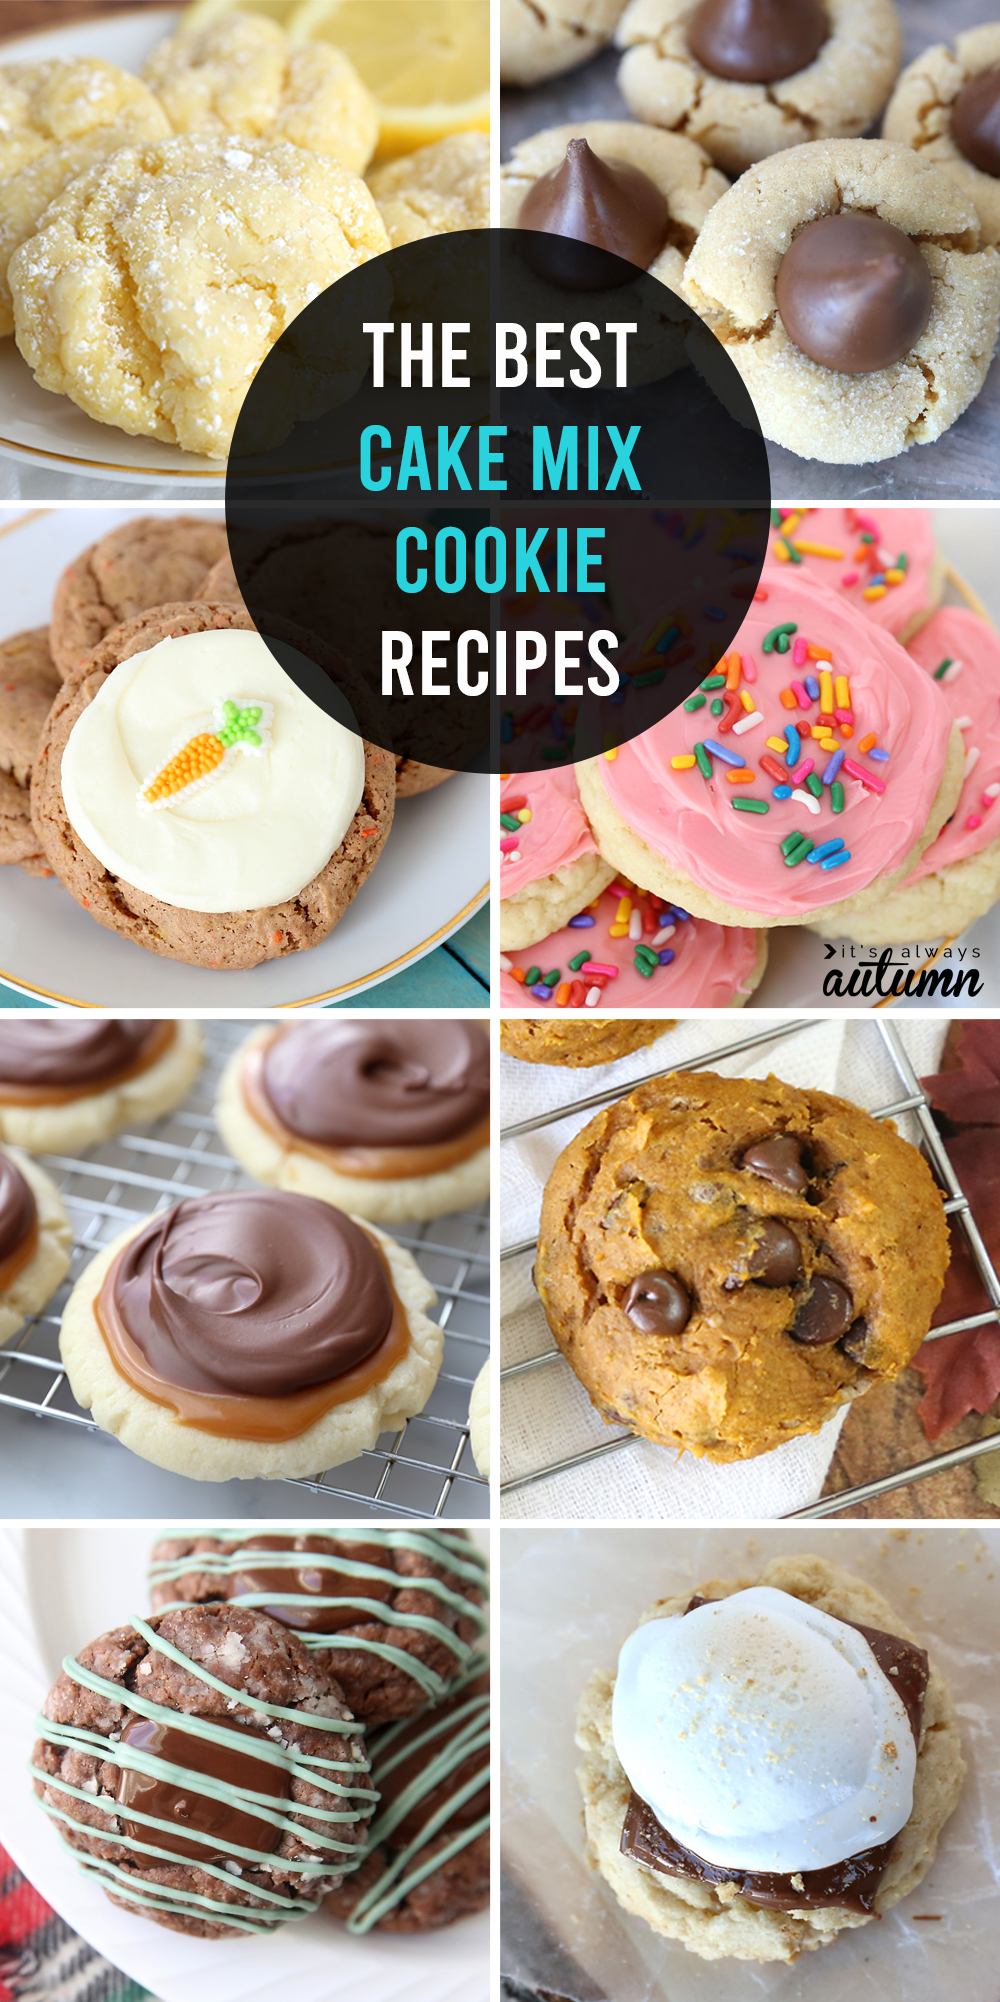 Find out how to make any flavor of cake mix cookies you want! The ultimate cake mix cookie recipe guide.